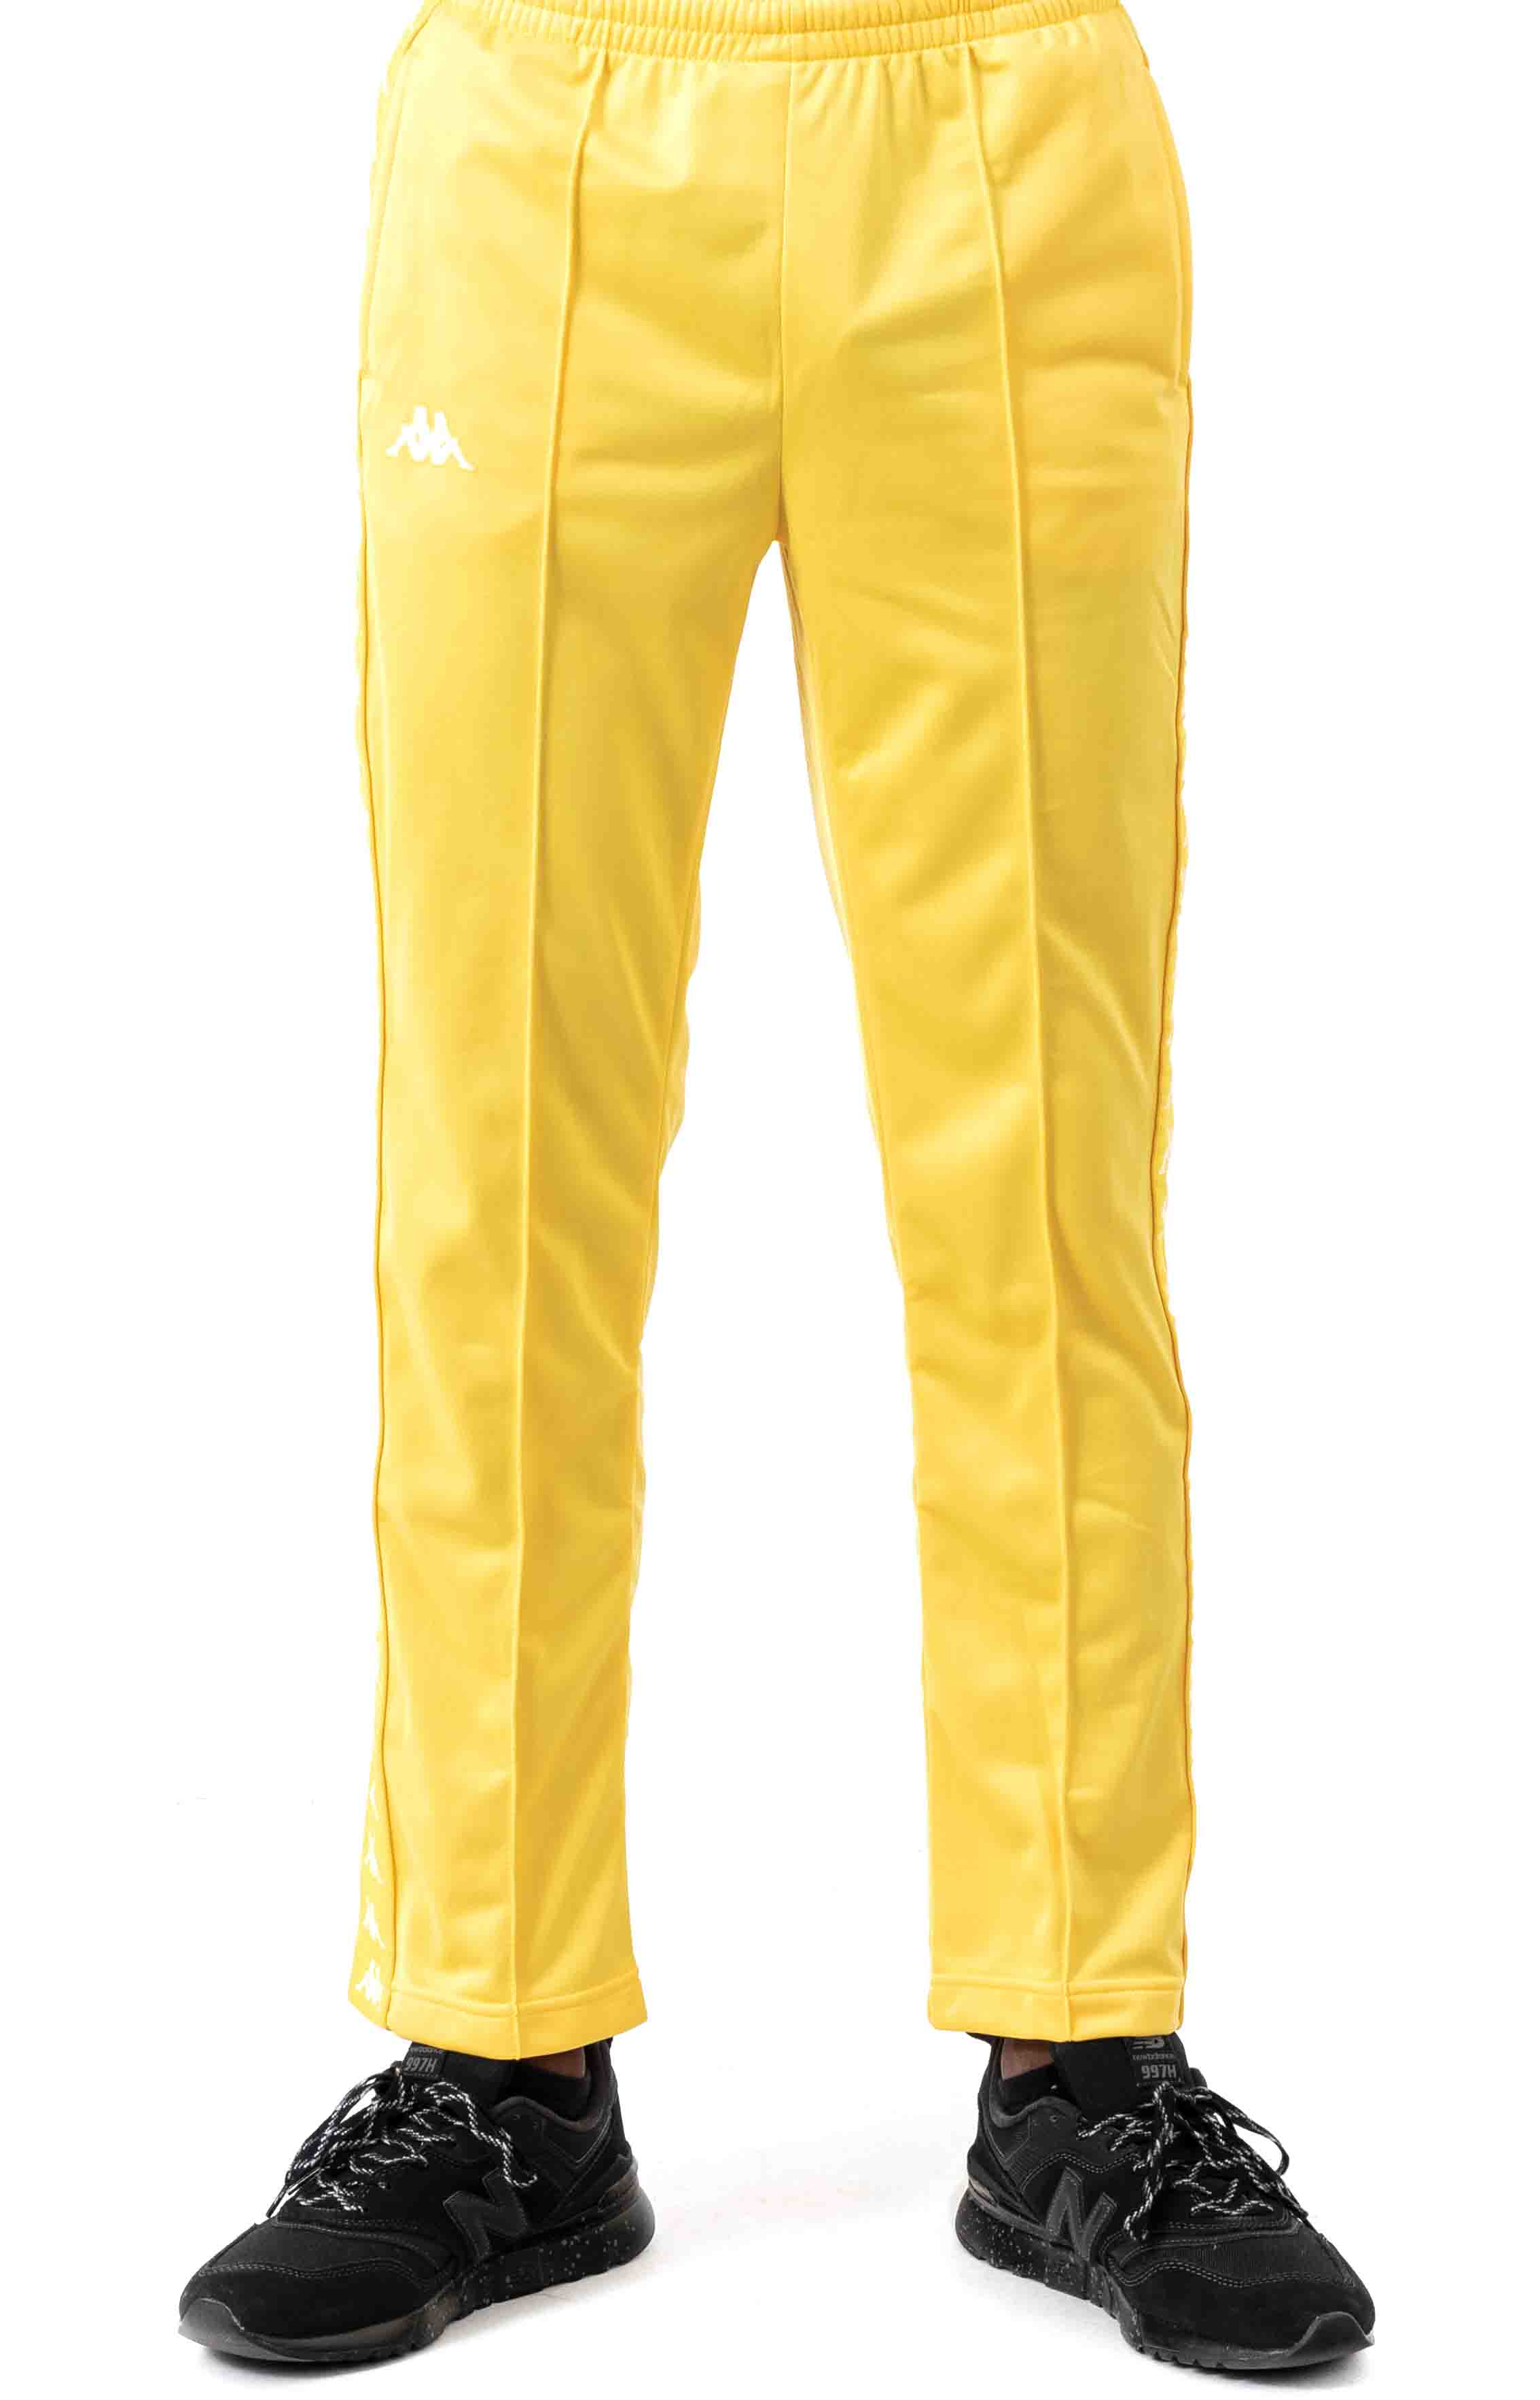 222 Banda Astoriazz Trackpant - Yellow/White 2